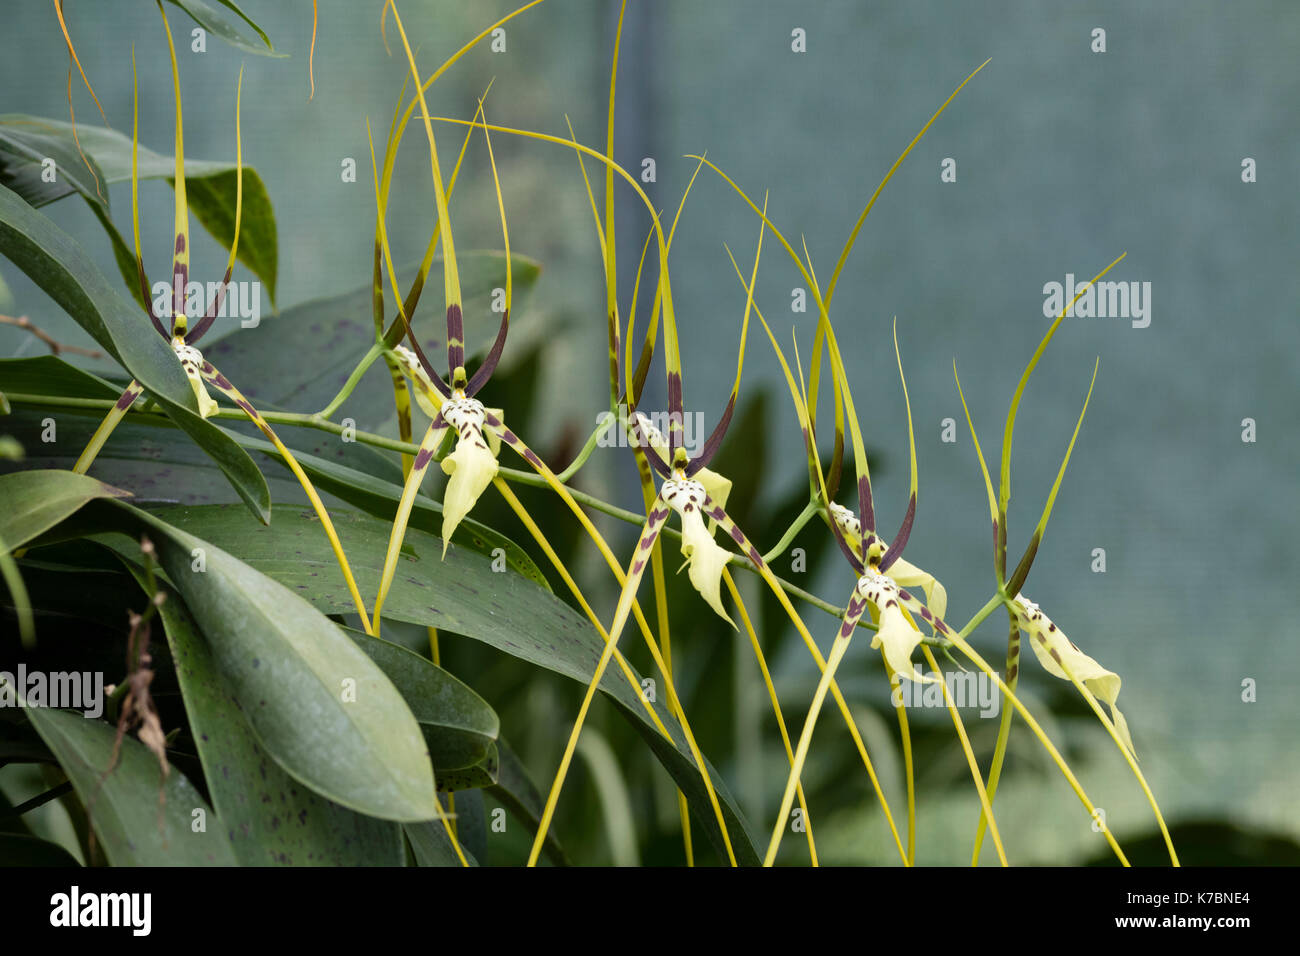 Spidery Flowers In The Spike Of The Hybrid Orchid, Brassia Edvah Loo Gx  U0027Vera